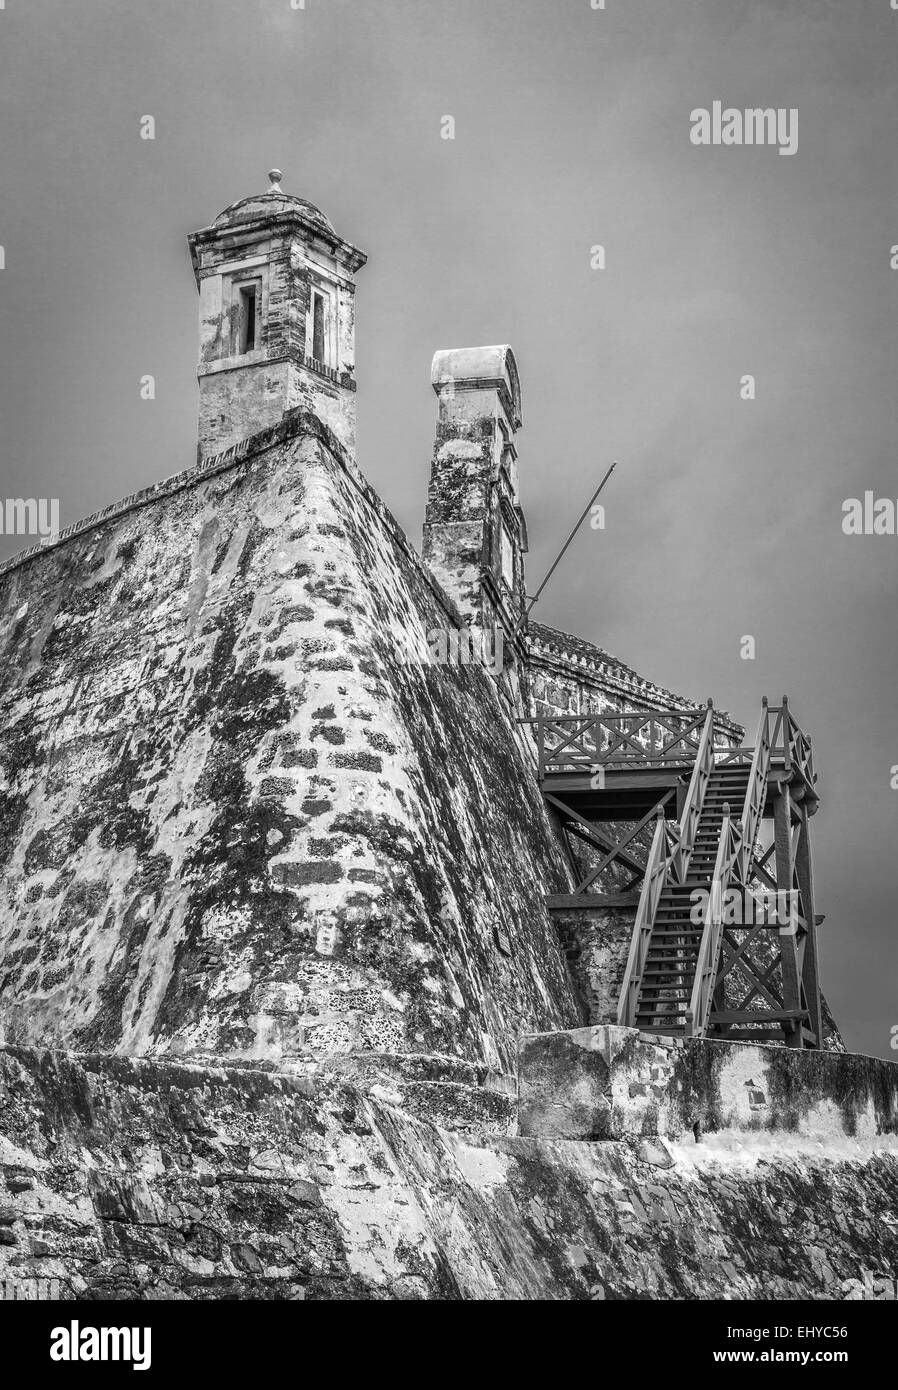 Monochrome photo of San Felipe fortress, Cartagena de Indias, Colombia. - Stock Image